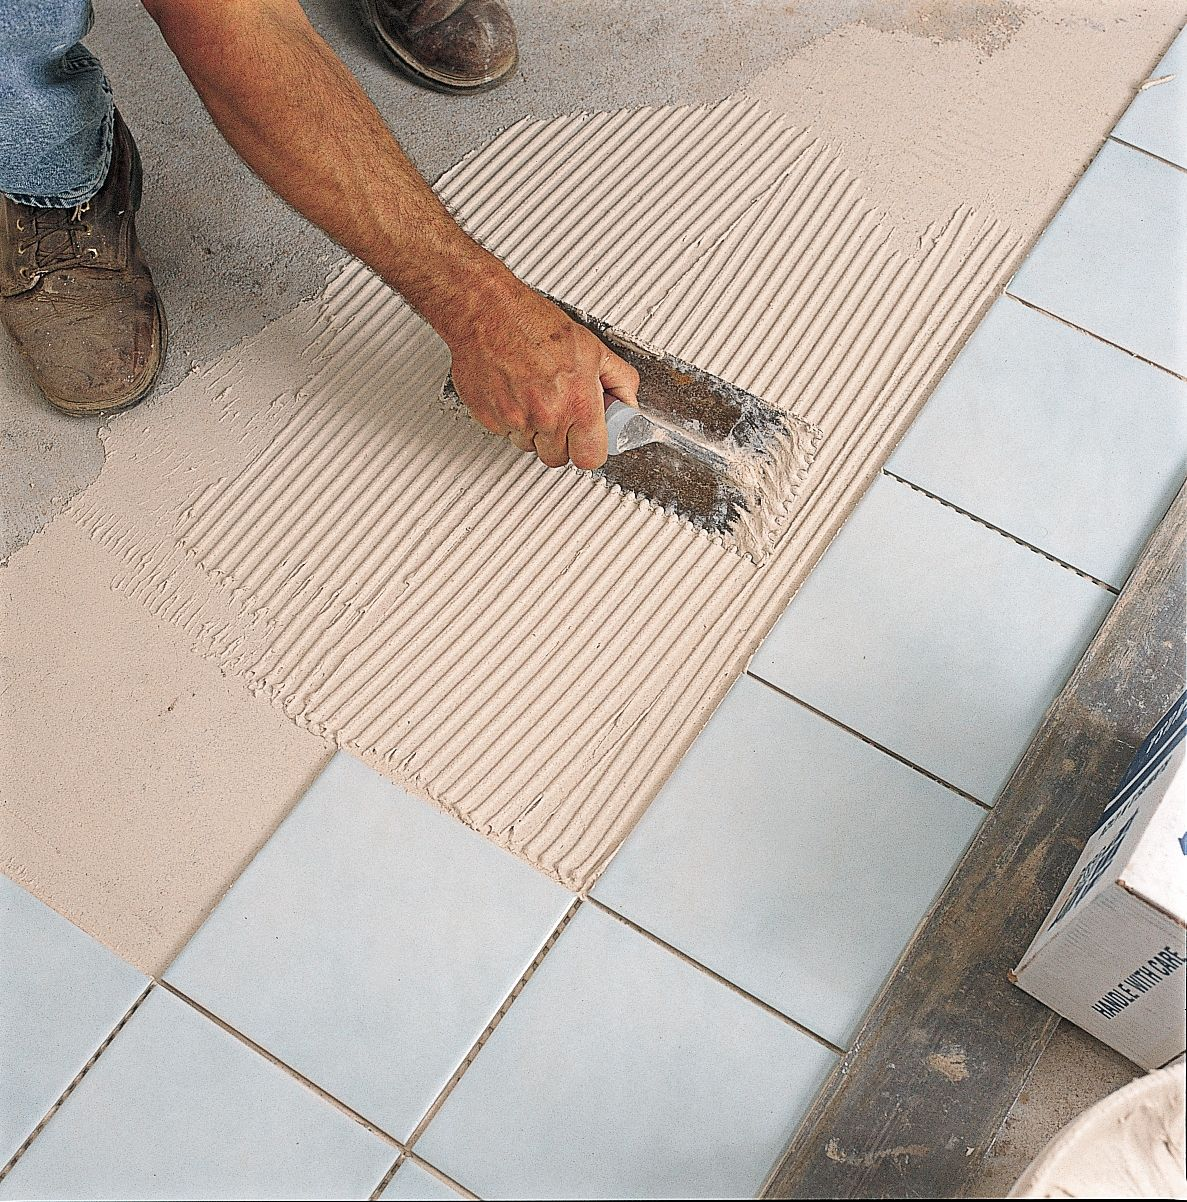 How to tile a floor spreads and then and flats how to tile a floor dailygadgetfo Gallery